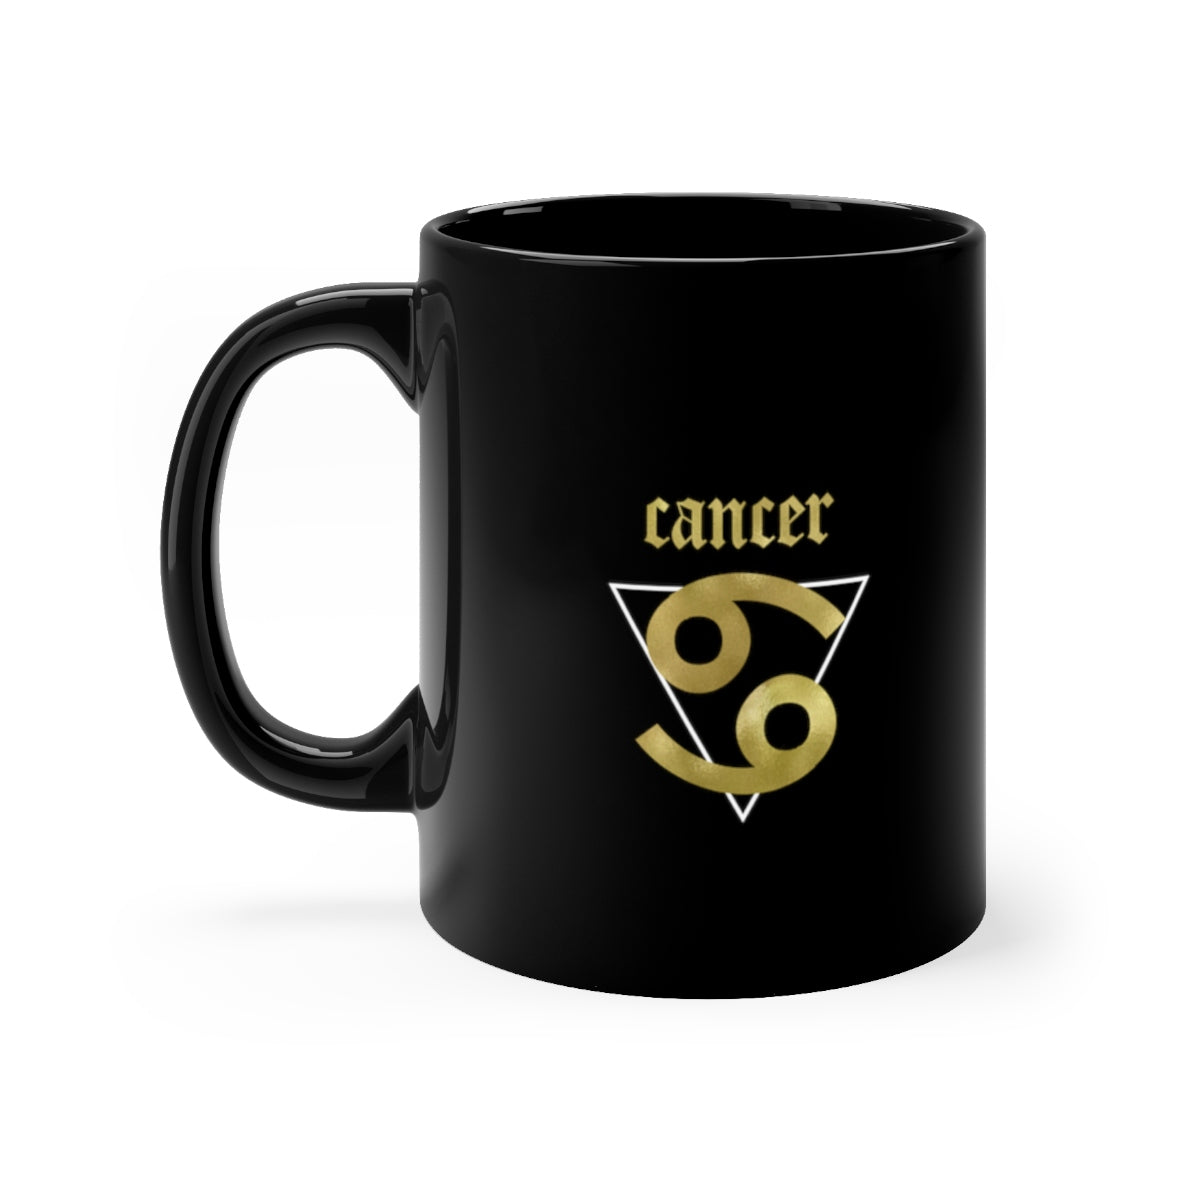 Cancer Mug #ChildishZodiac